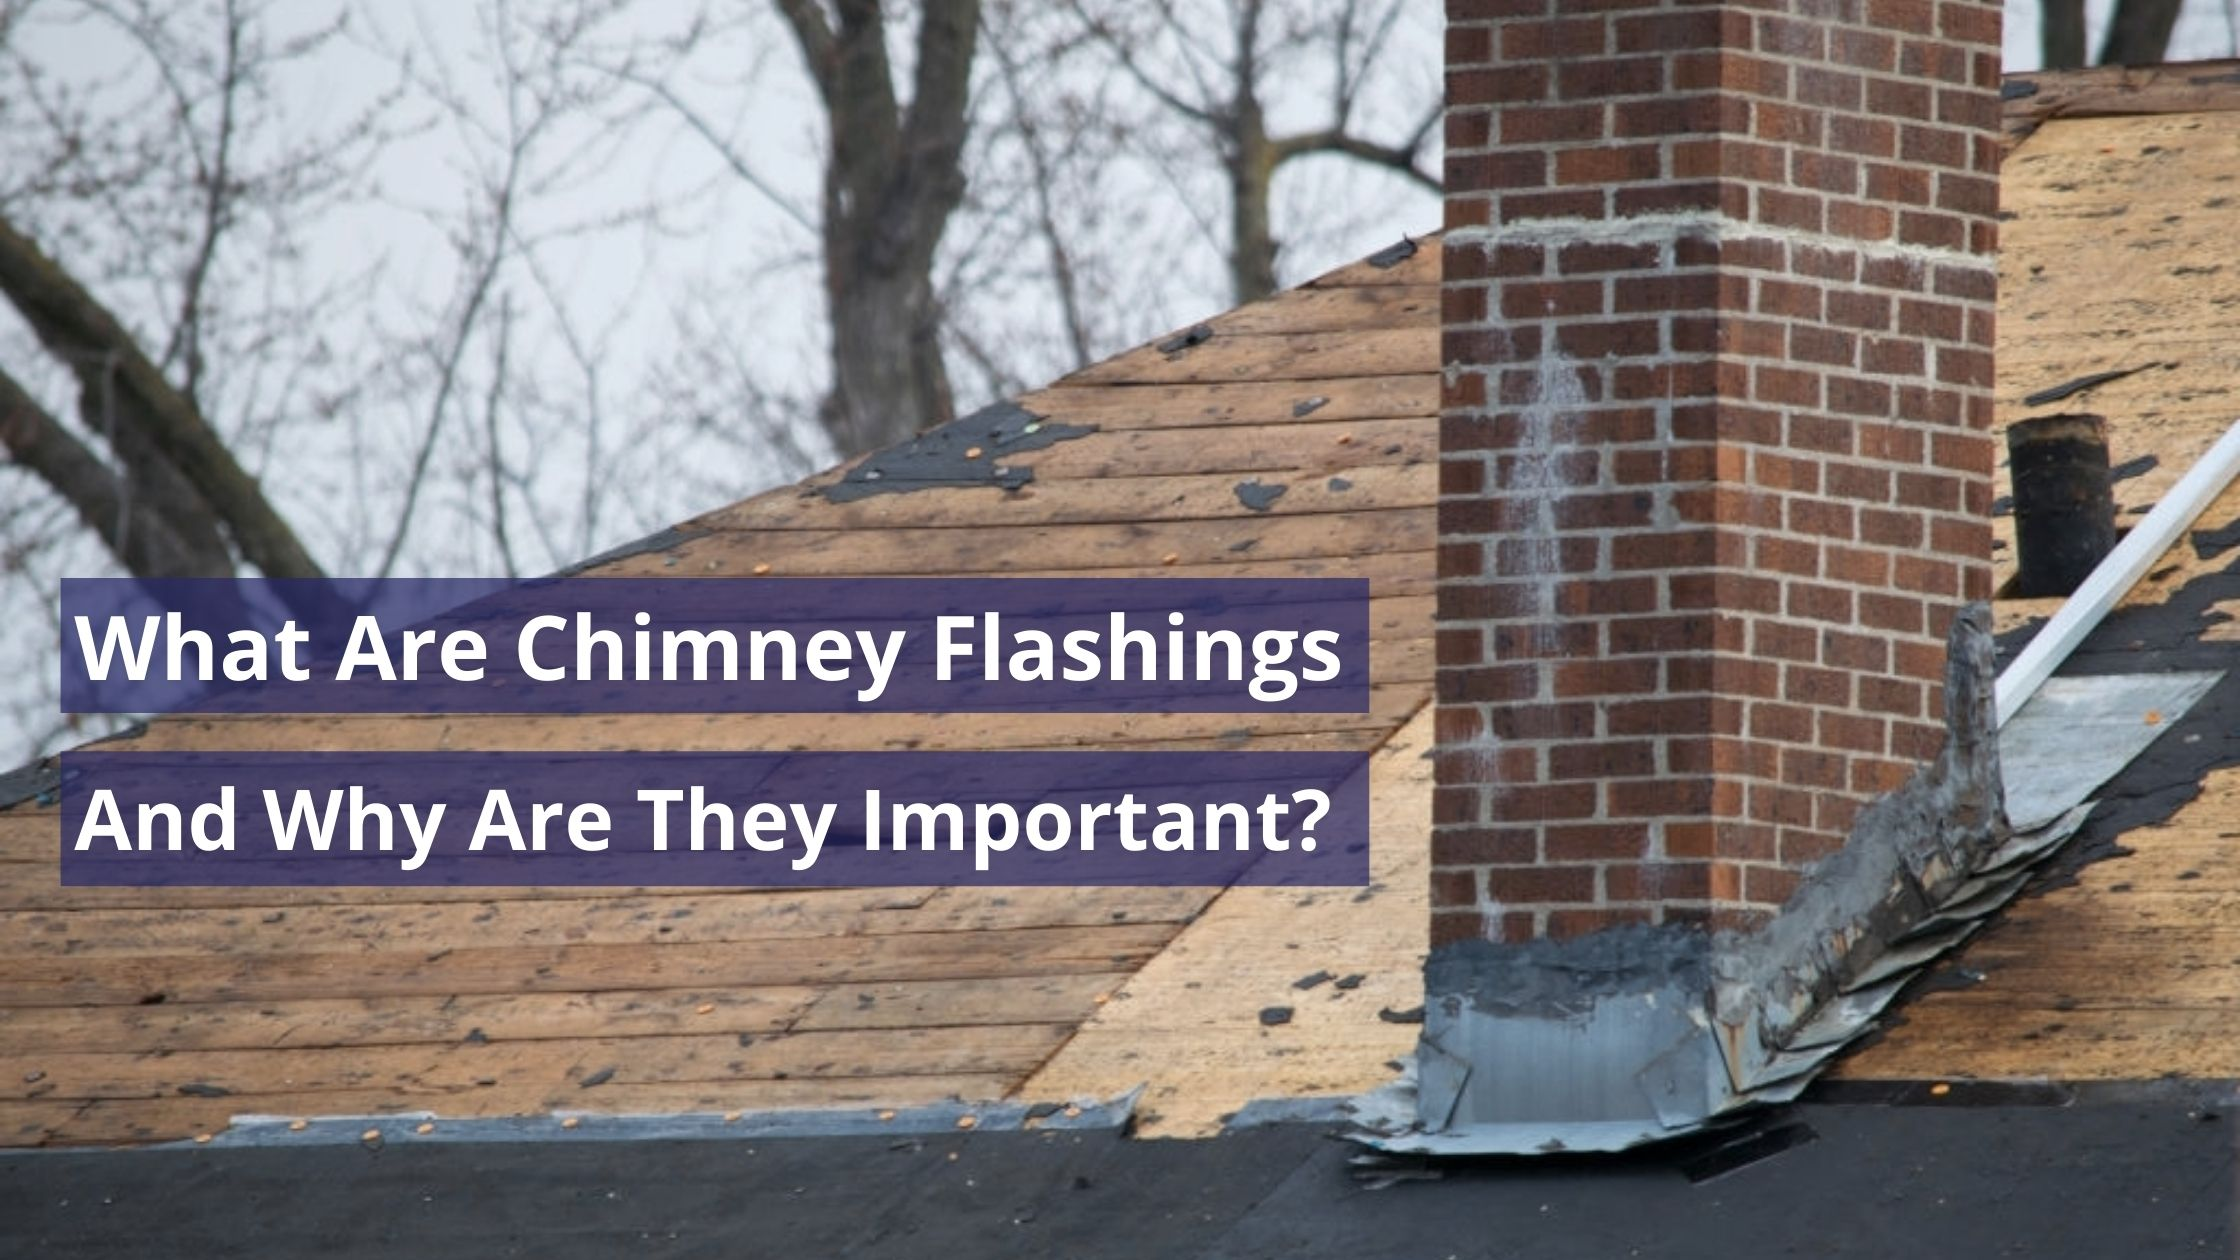 What Are Chimney Flashings